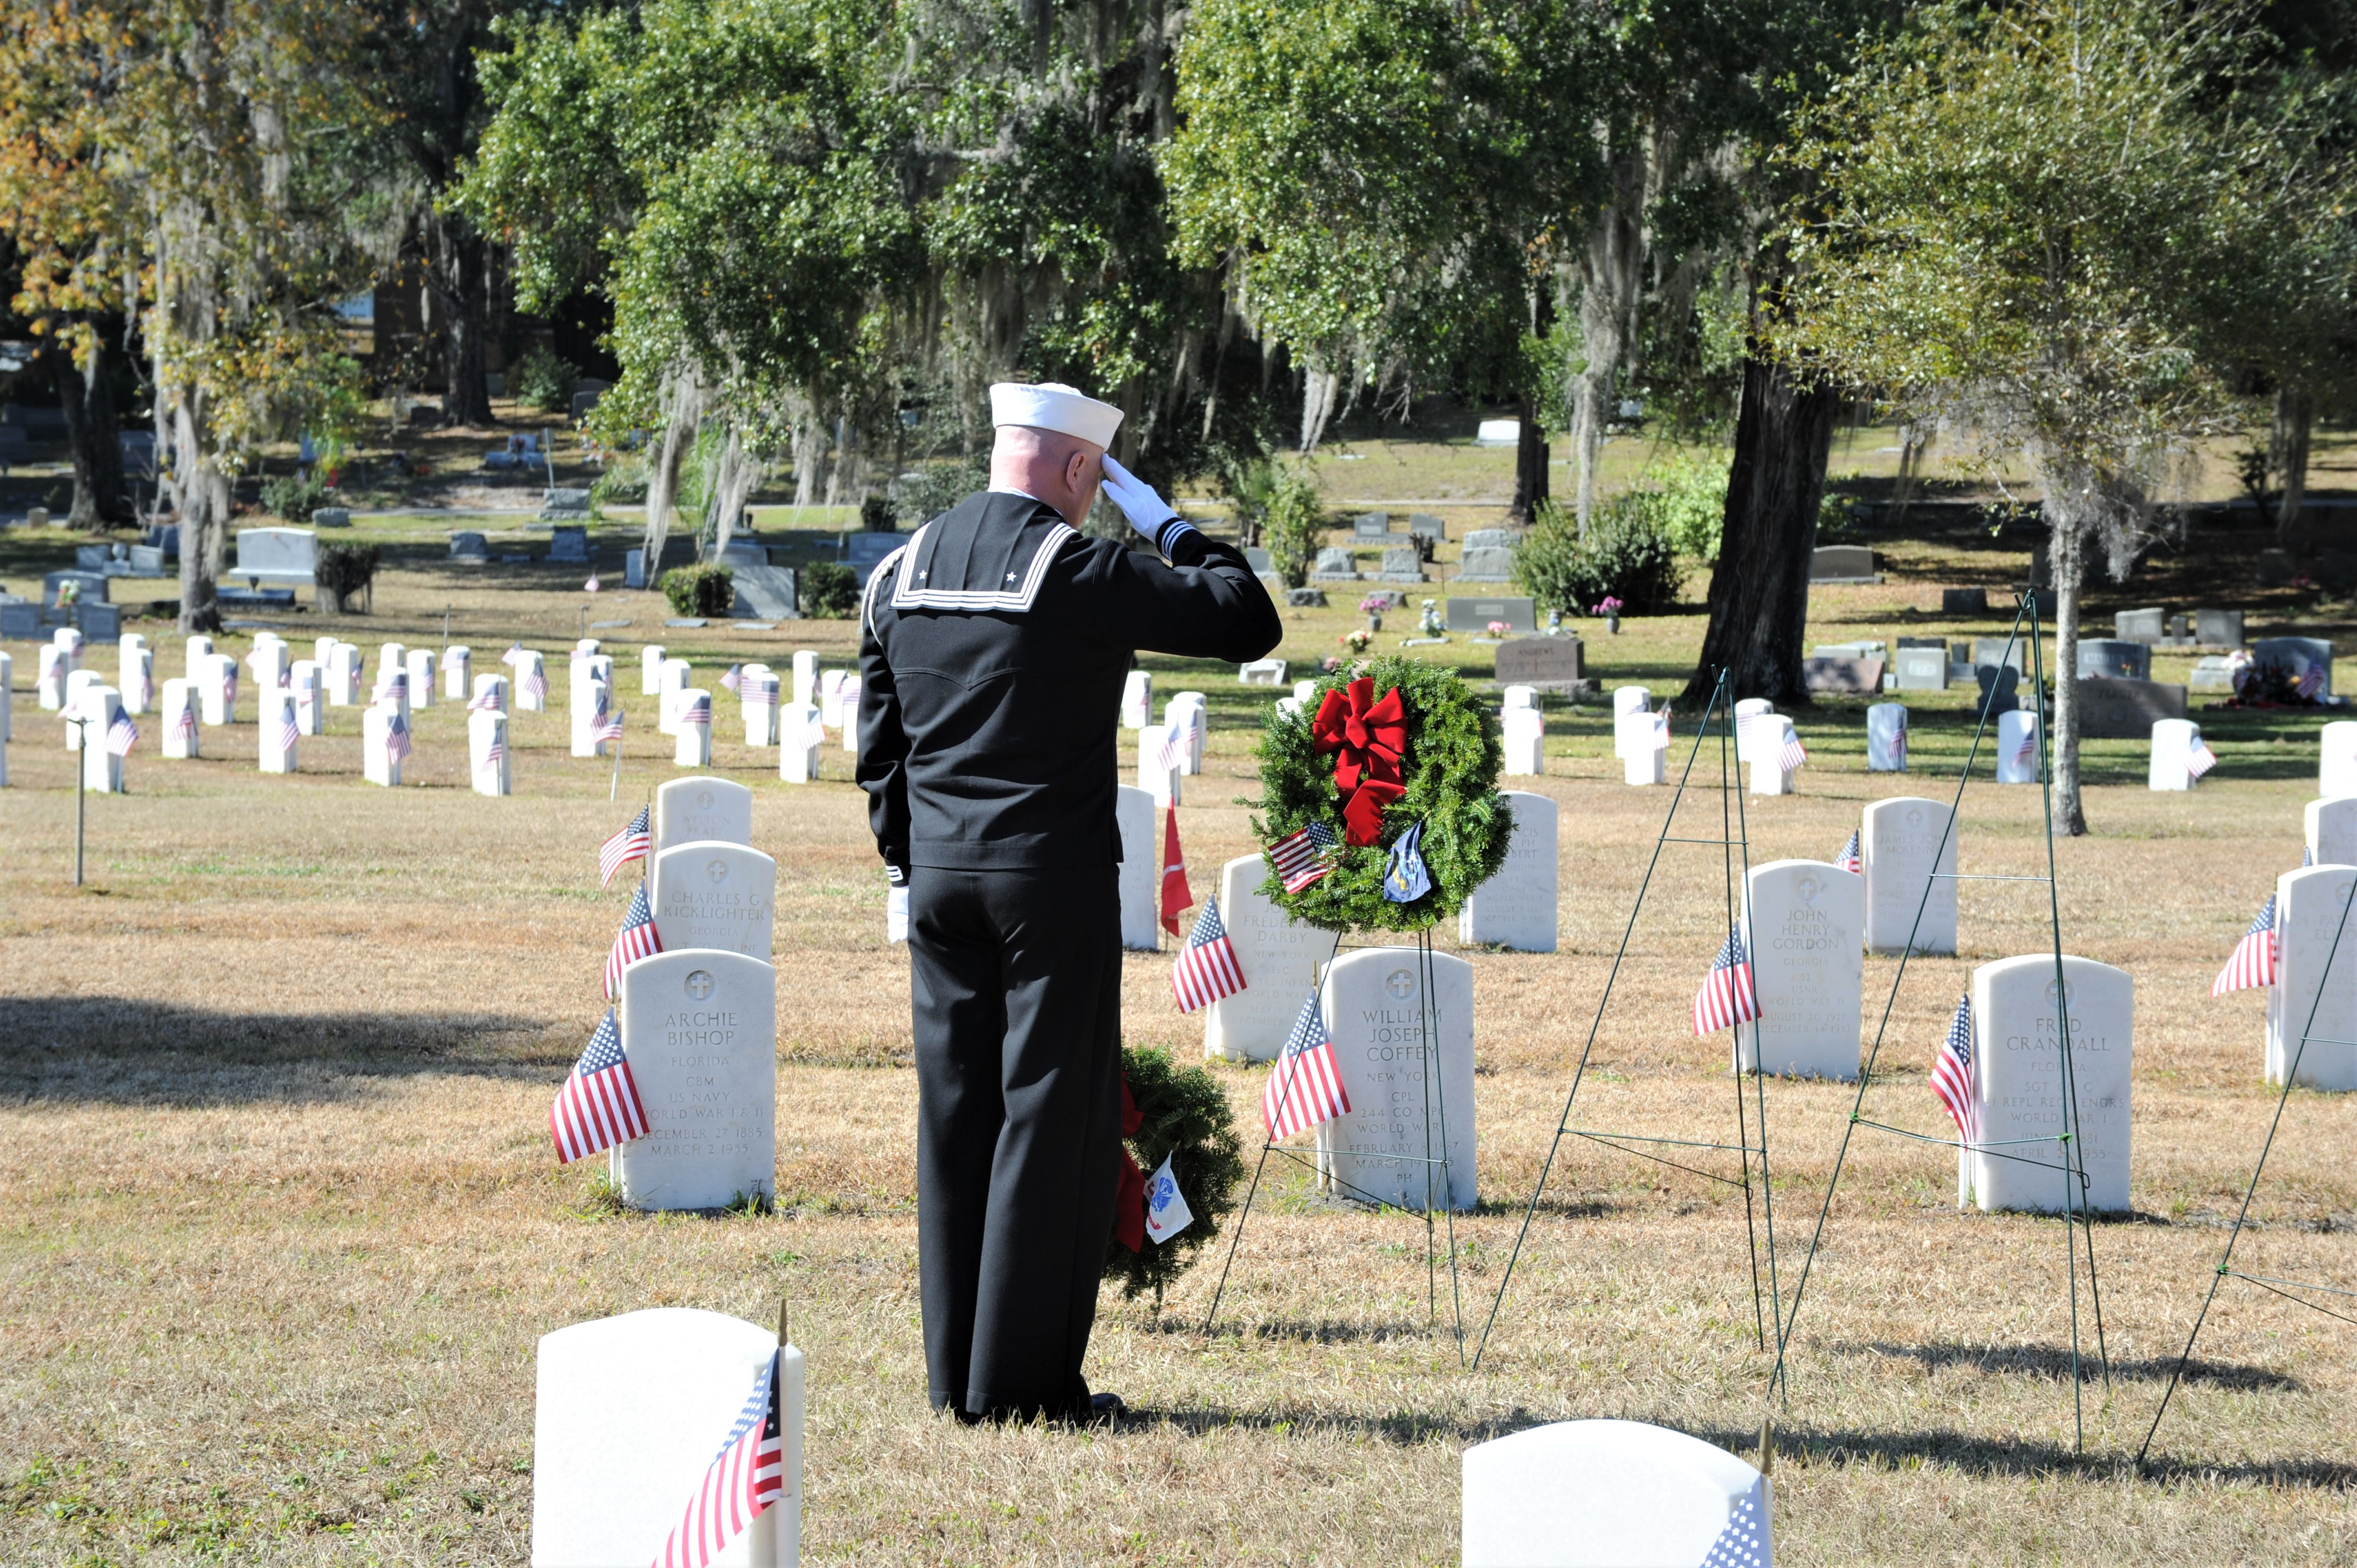 Winsted DAR chapter to hold Wreaths Across America ceremony on Saturday